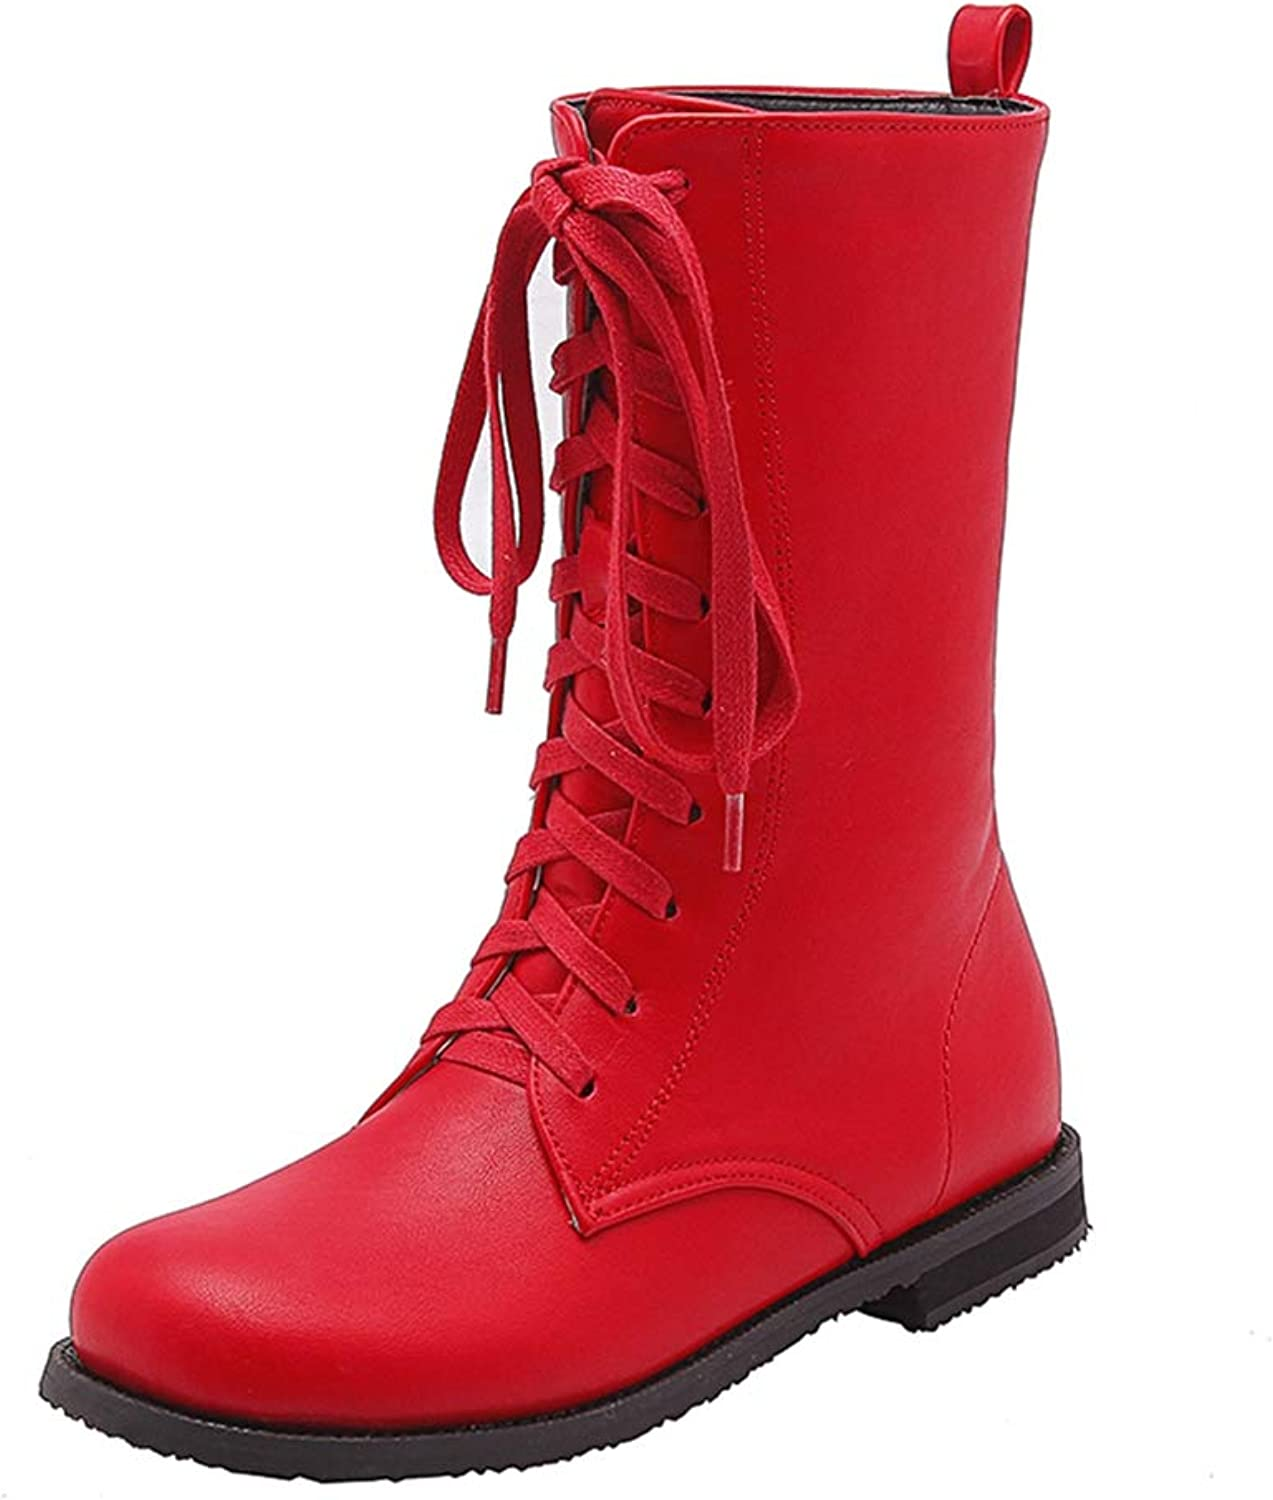 T-JULY Autumn Winter Women's Boots Fashion Cool Leisure Lace up Martin shoes